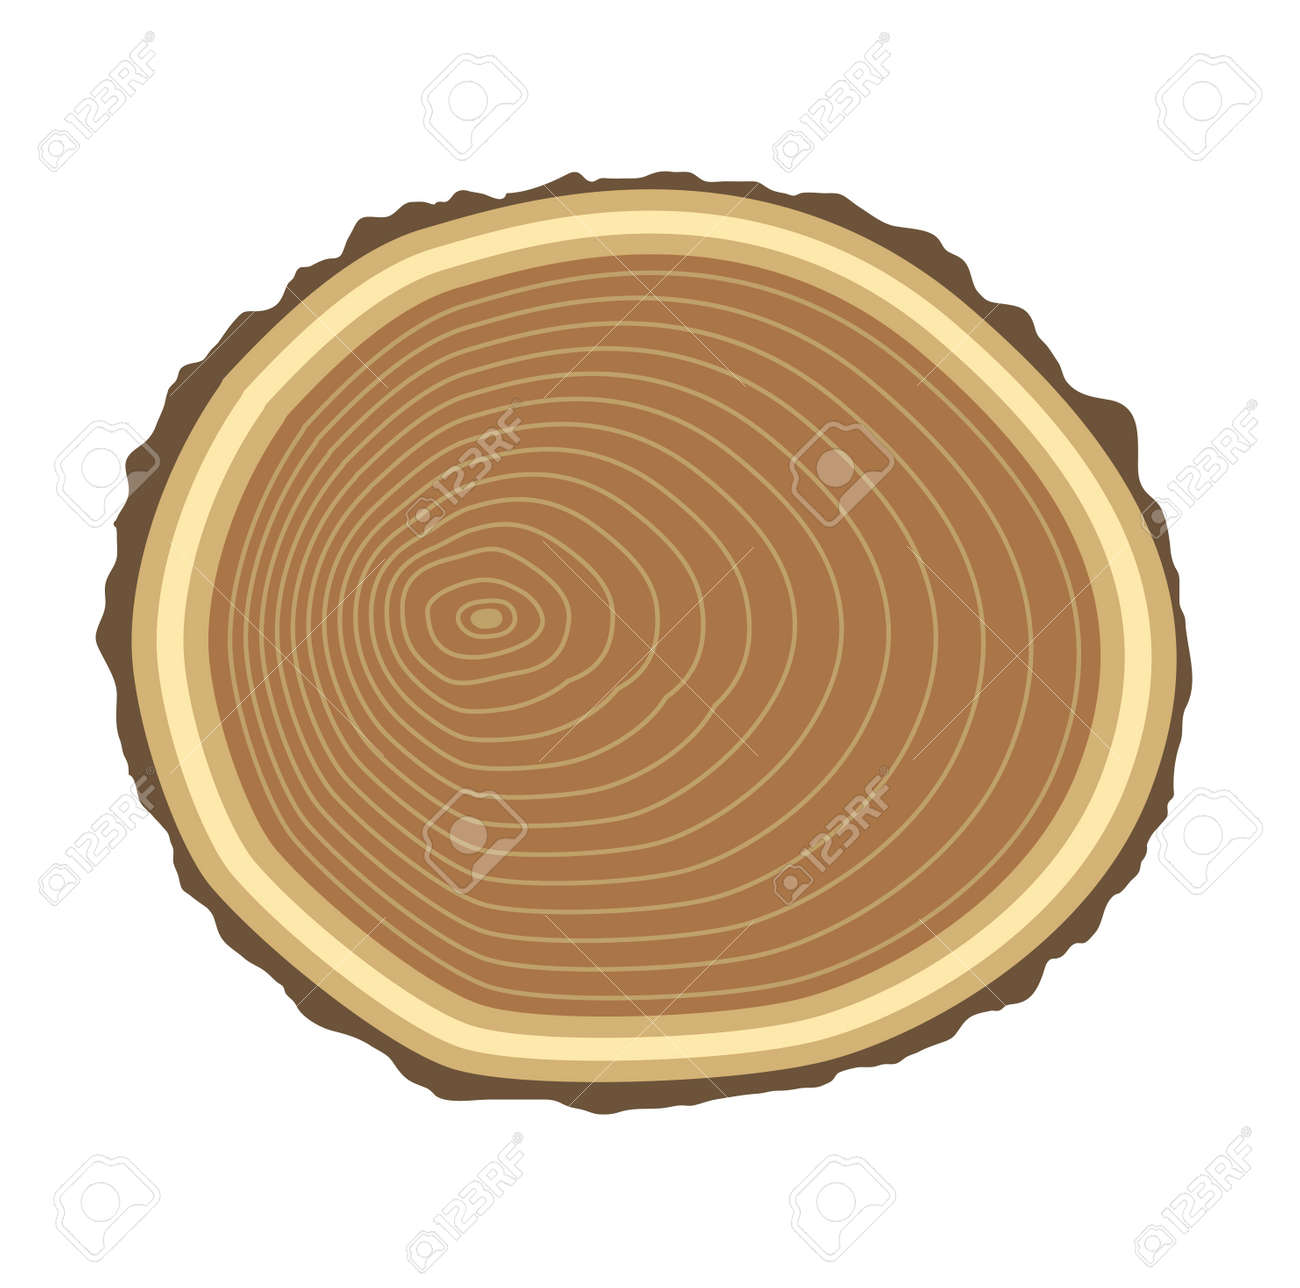 Vector   Wood Slice Texture Wooden Circle Cut Tree Material. Tree Slices  Wood Trunk Section Natural Timber. Slice Of Tree Trunk.